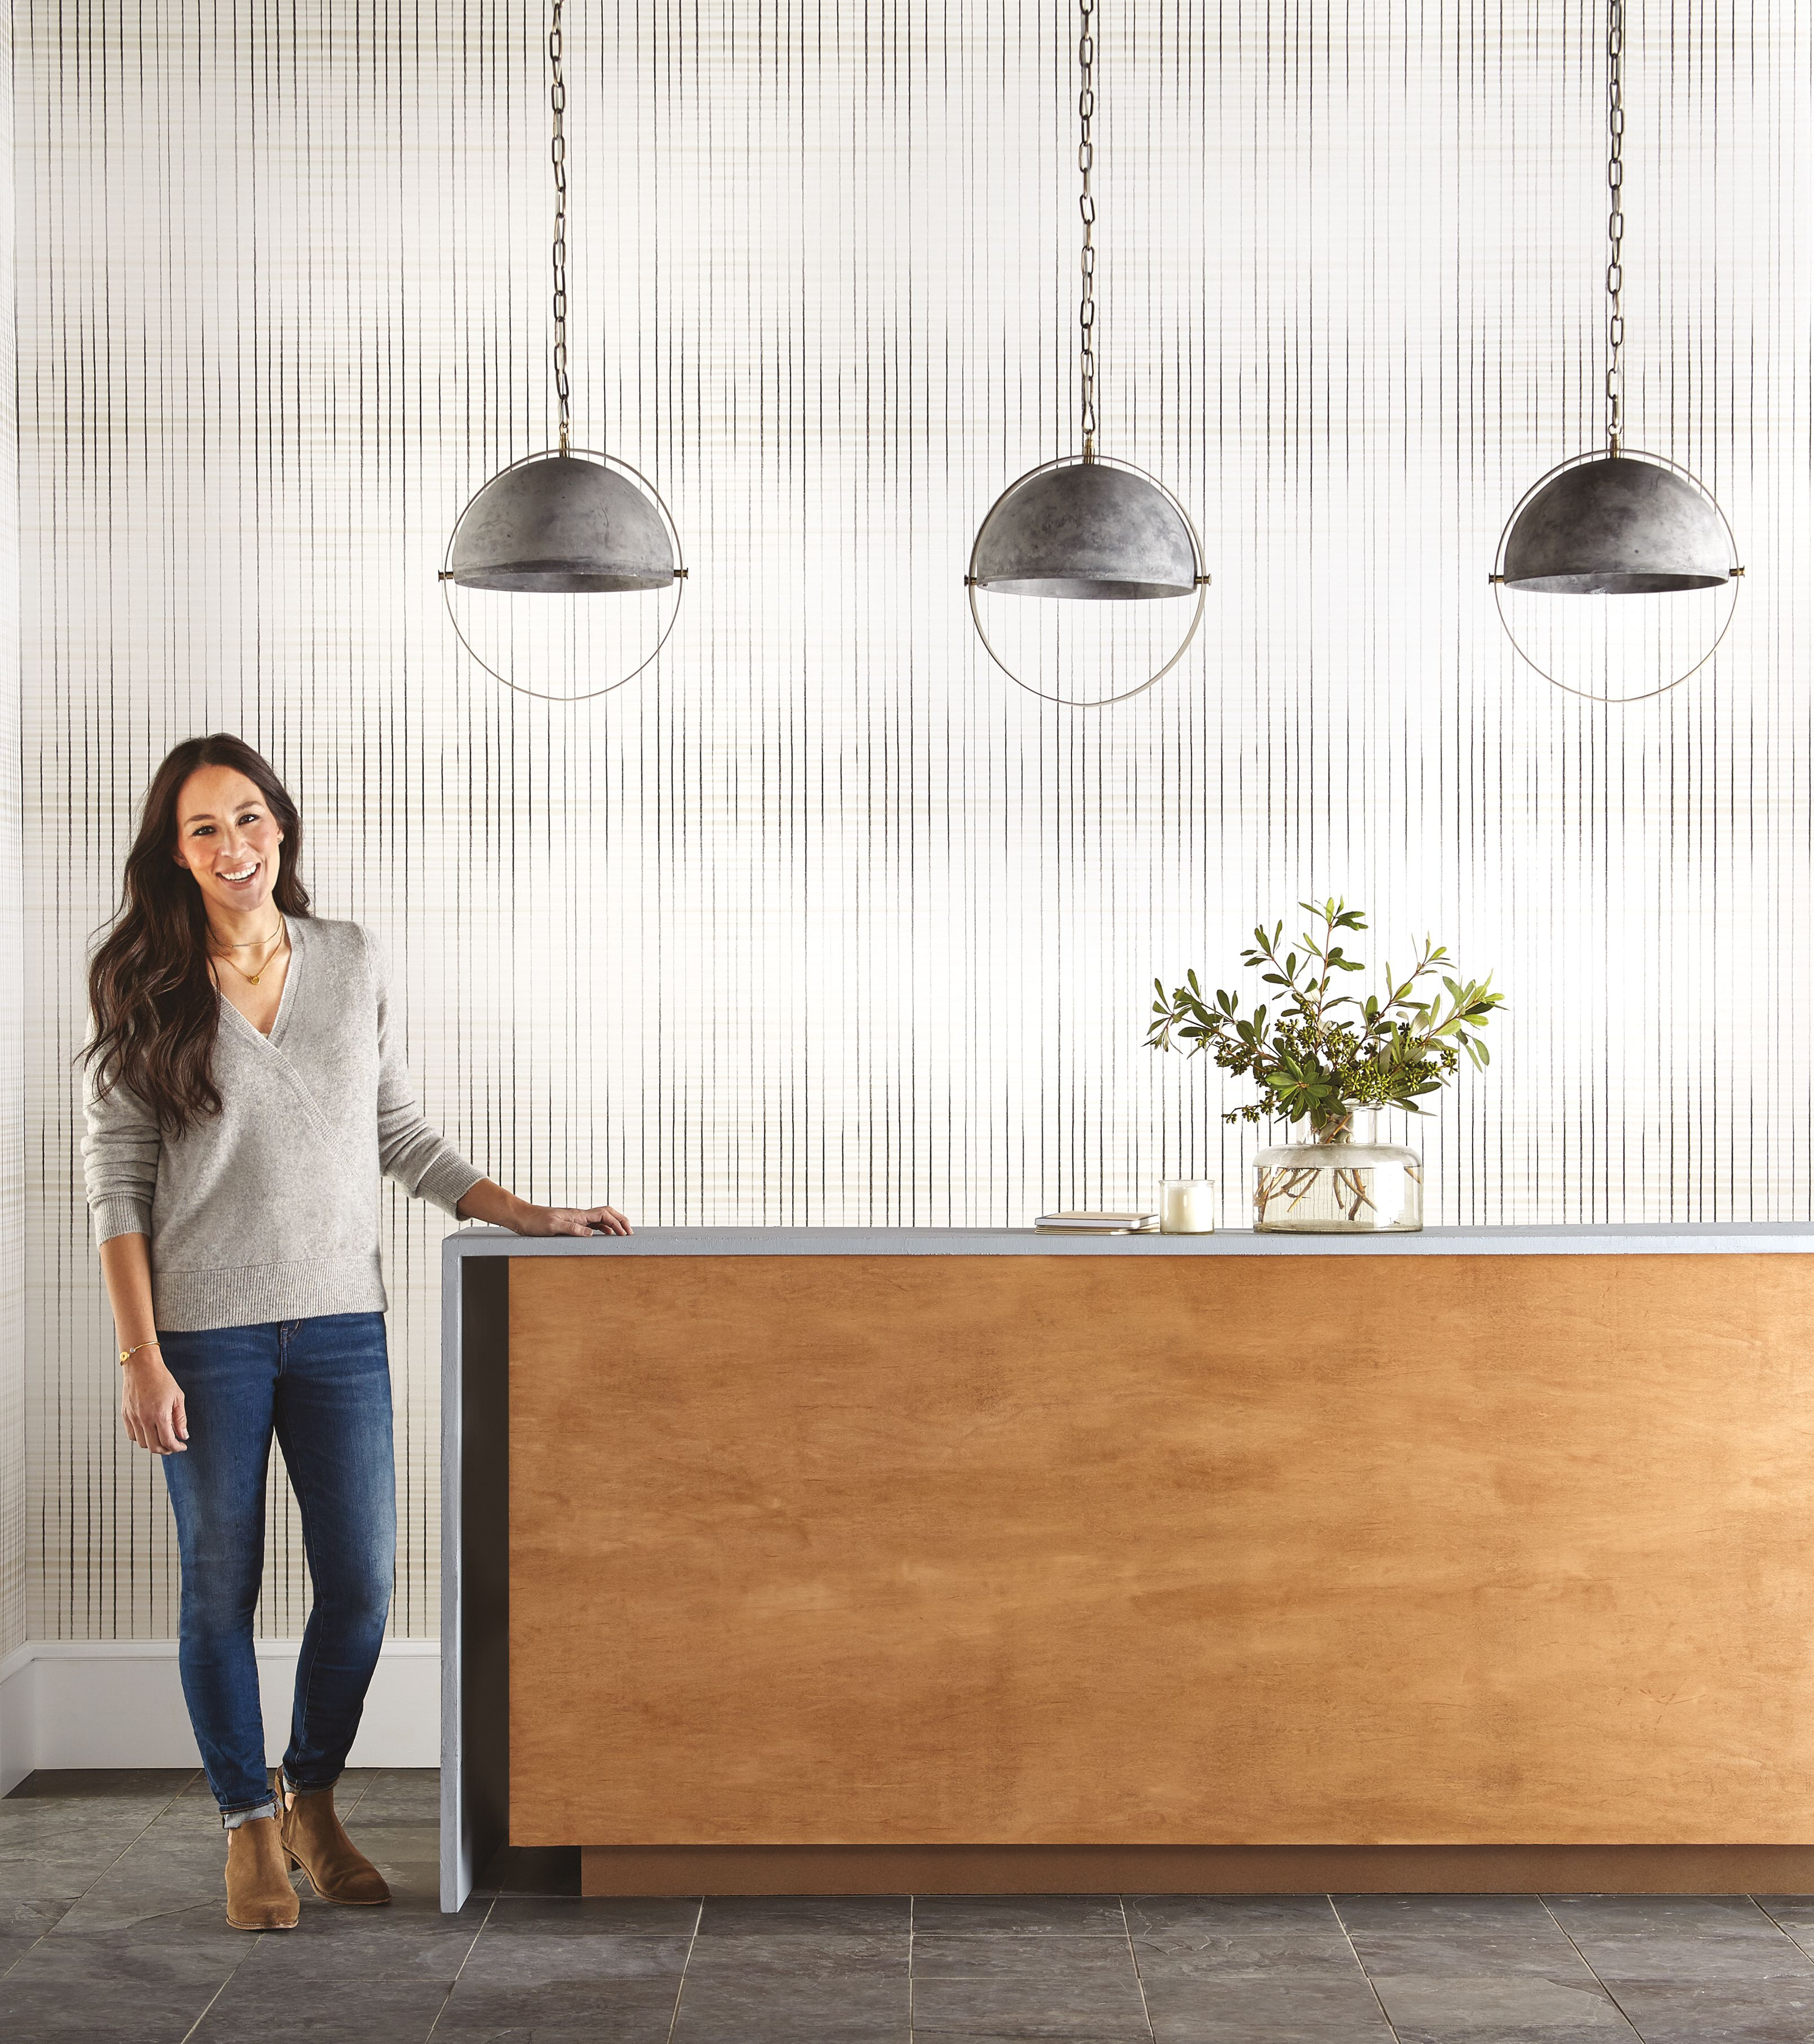 Joanna Gaines Does It Again Inkwell Type 2 Vinyl Wallcovering For Your Office Salon Restaurant Or Any Magnolia Homes Wall Coverings Joanna Gaines Wallpaper